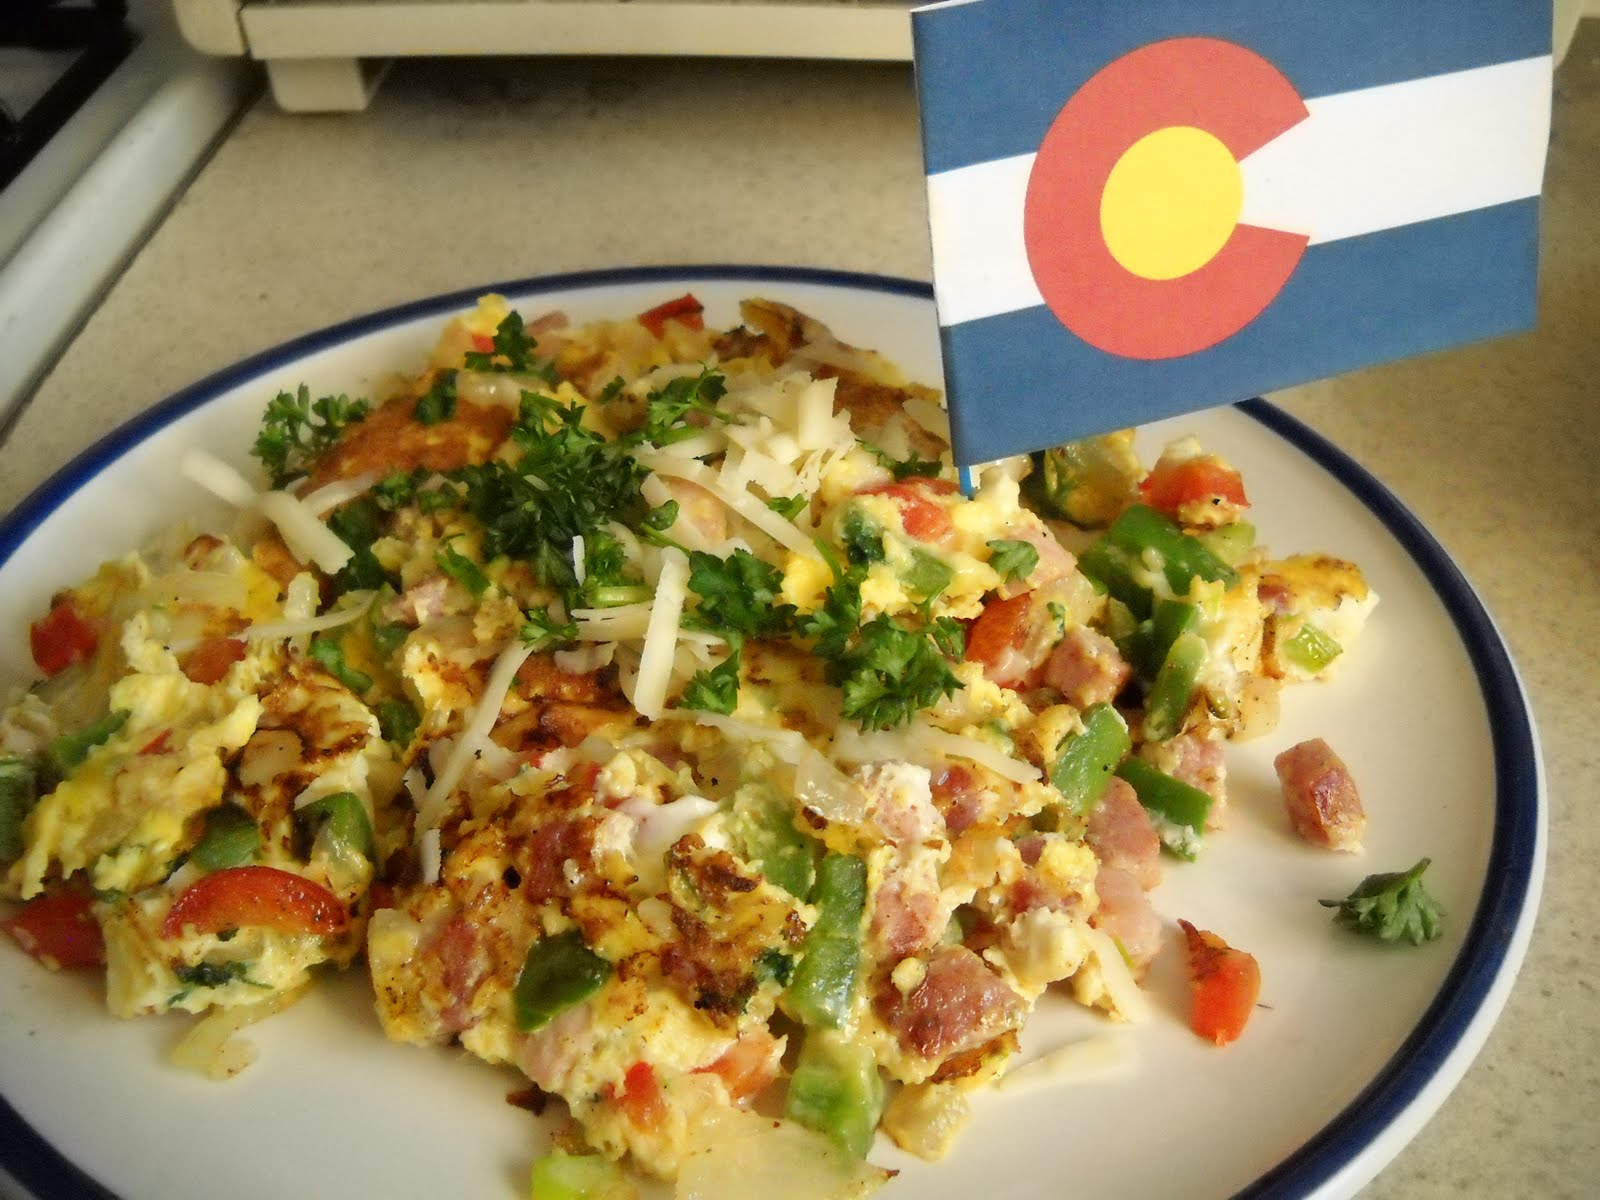 ... Snacker: Snacking State-by-State: Colorado I - A Big Ol' Omelette